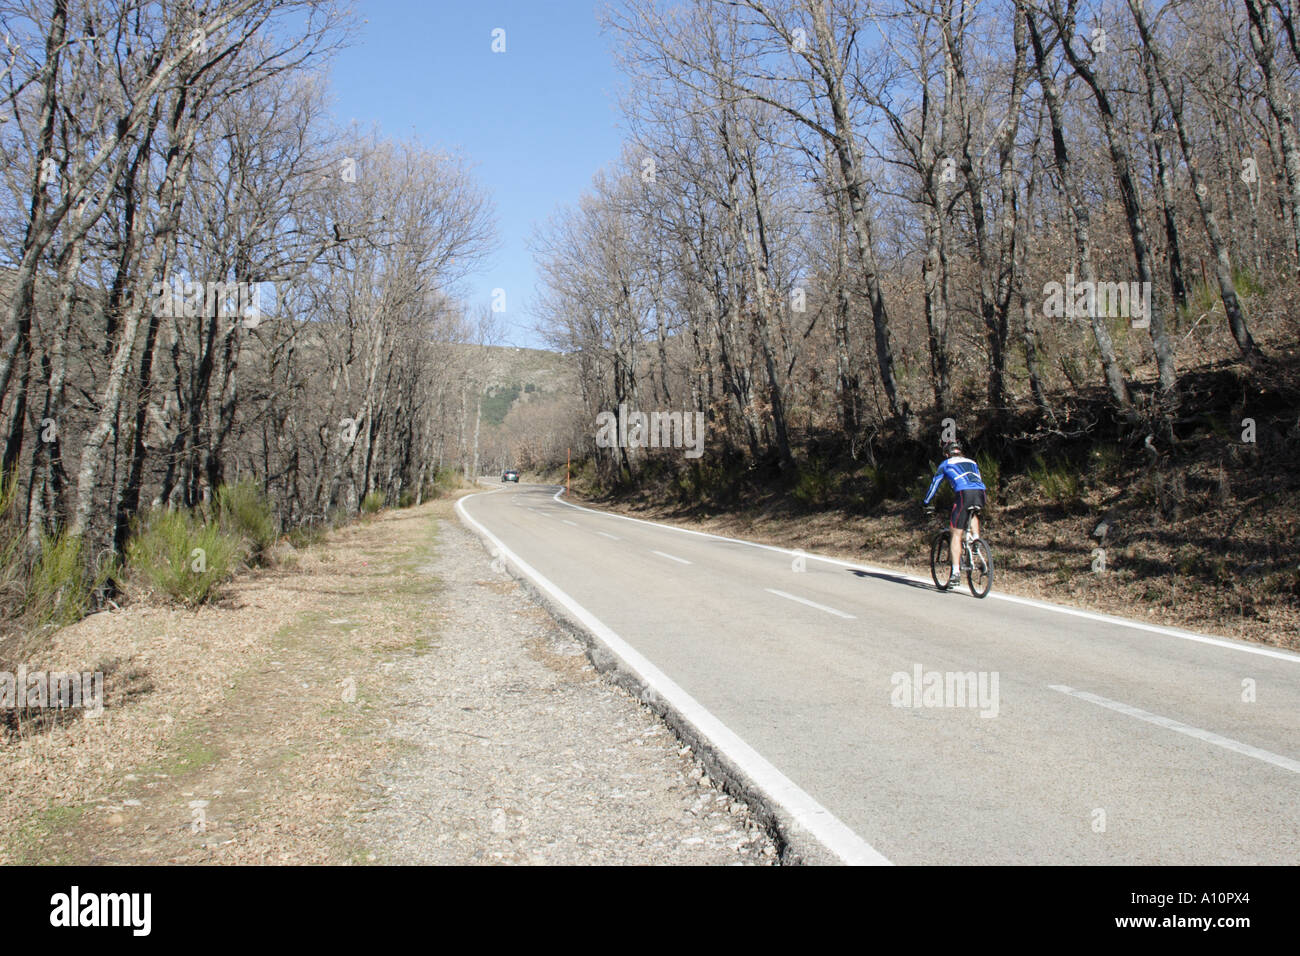 Cyclist on Tree-lined mountain road, Sierra de Guadarrama, Central Spain Stock Photo